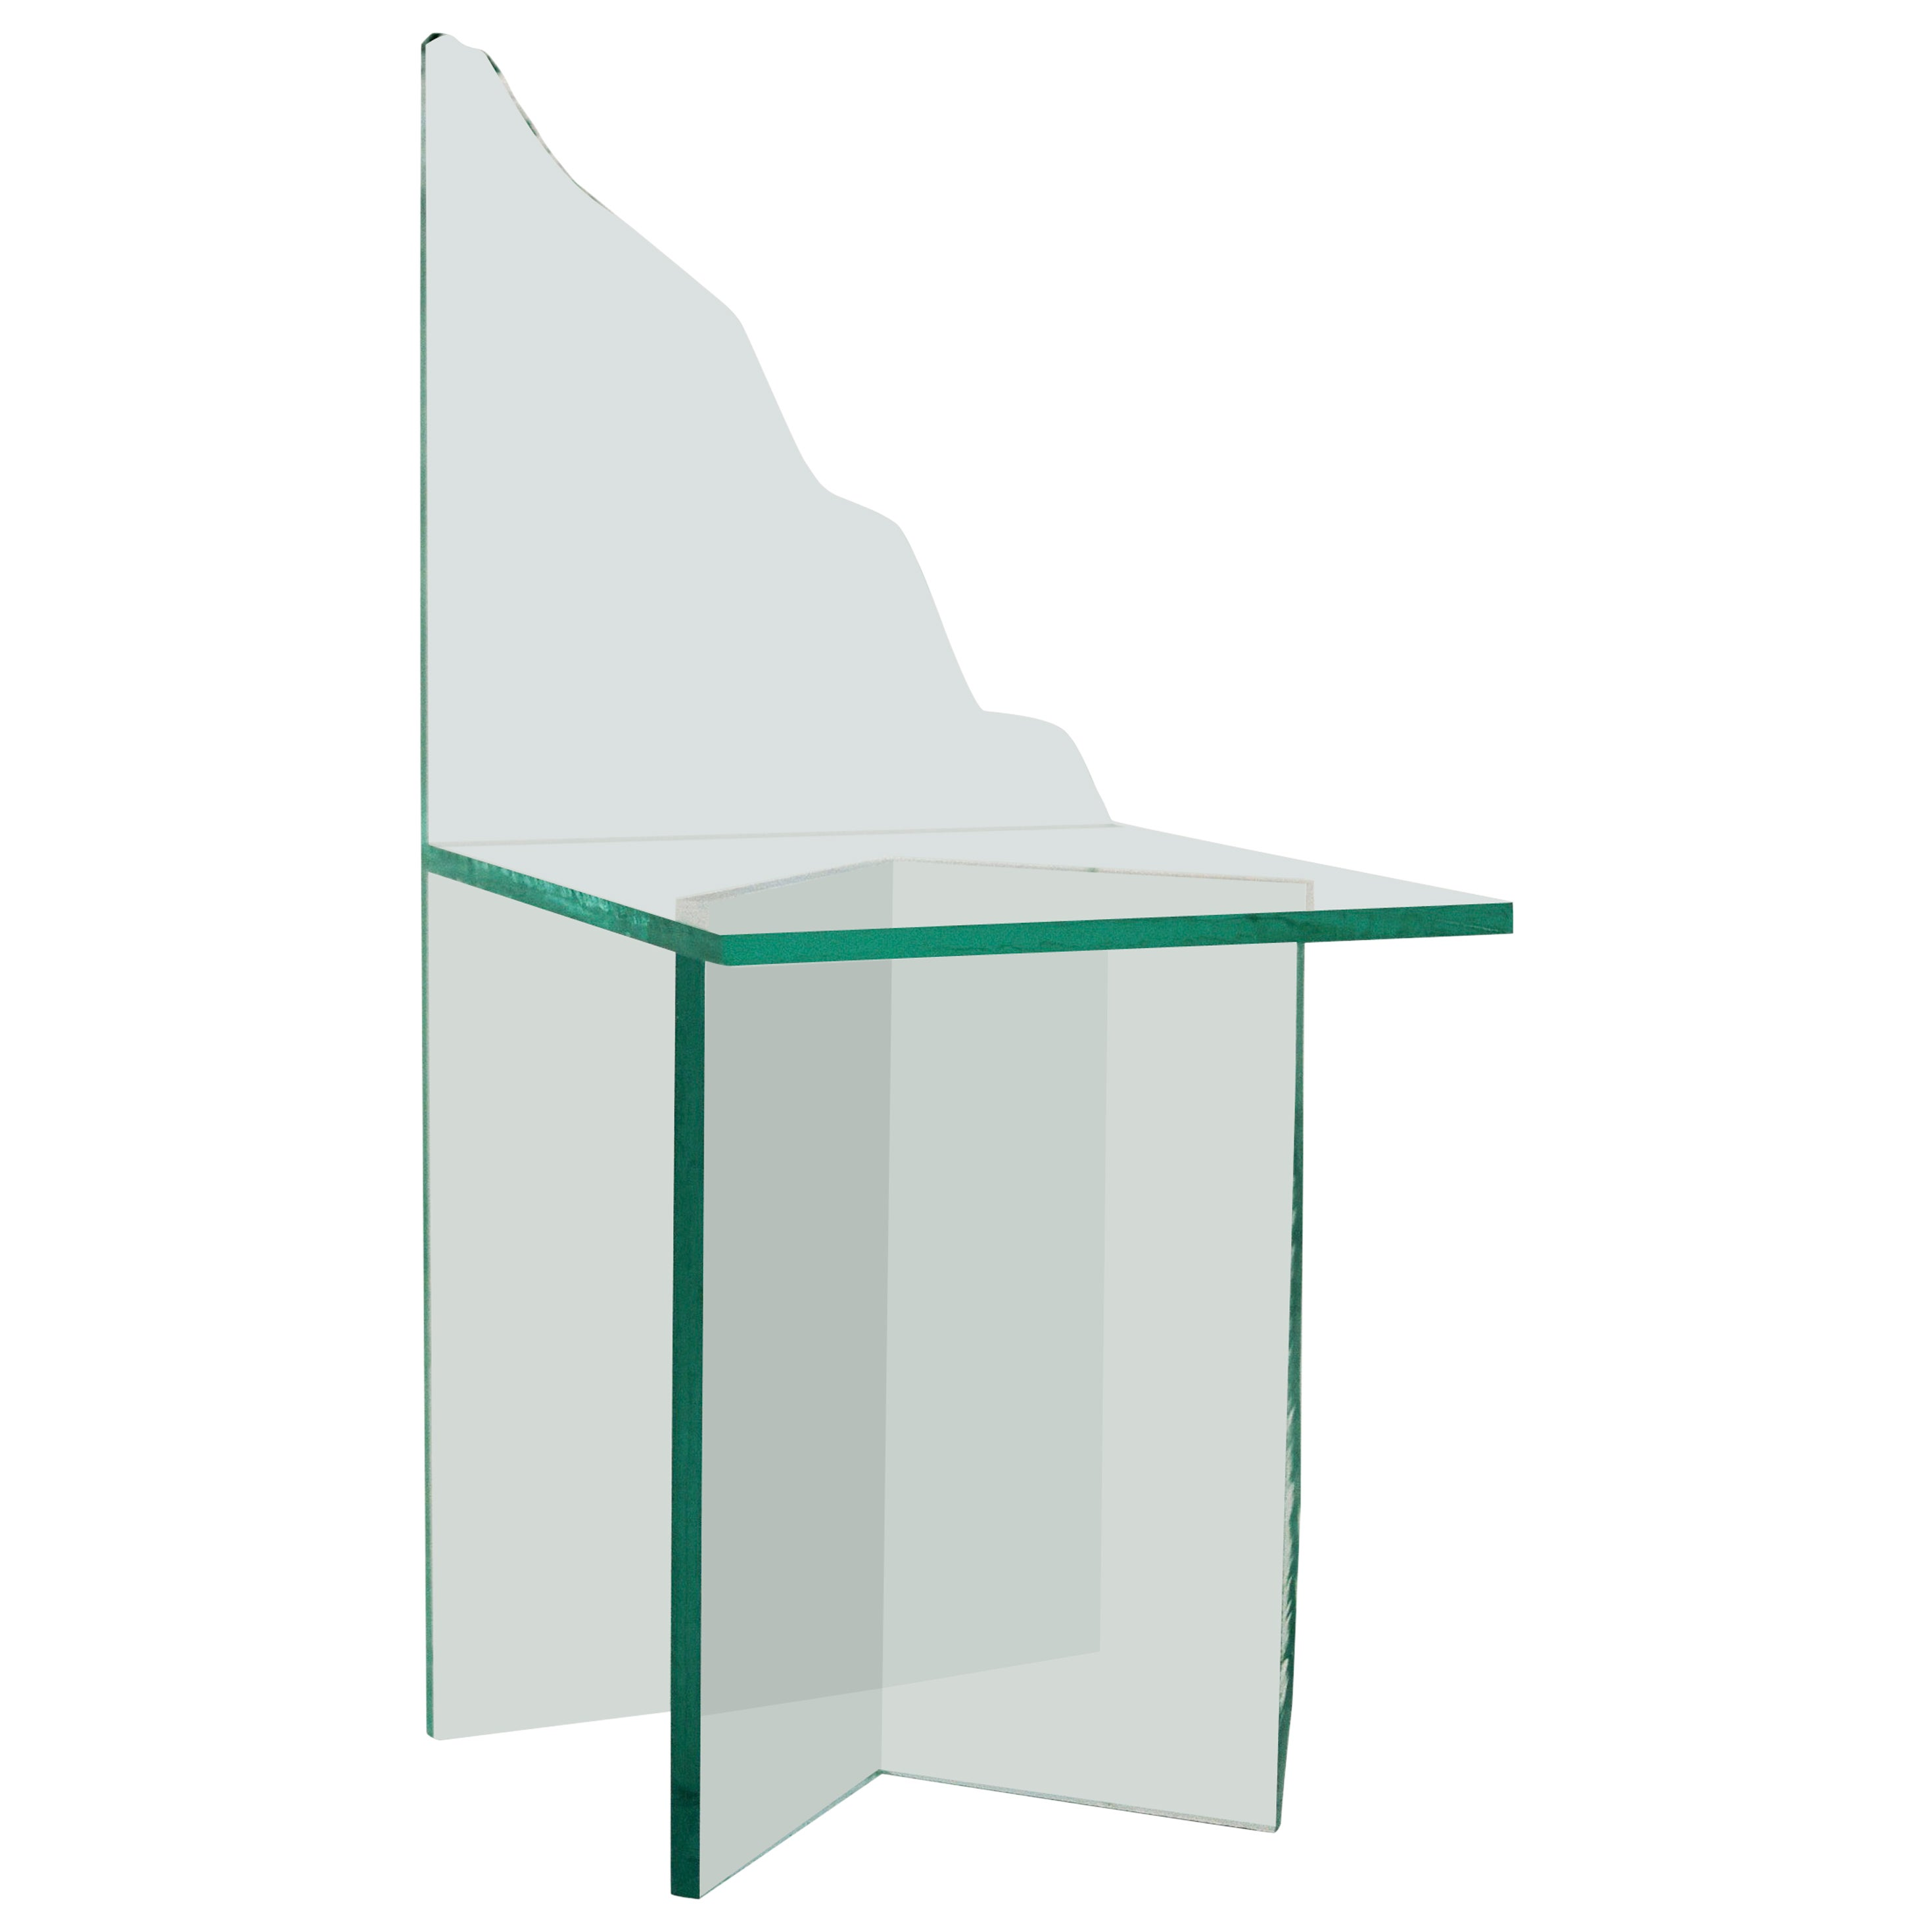 Glass Chair Three by Guillermo Santoma